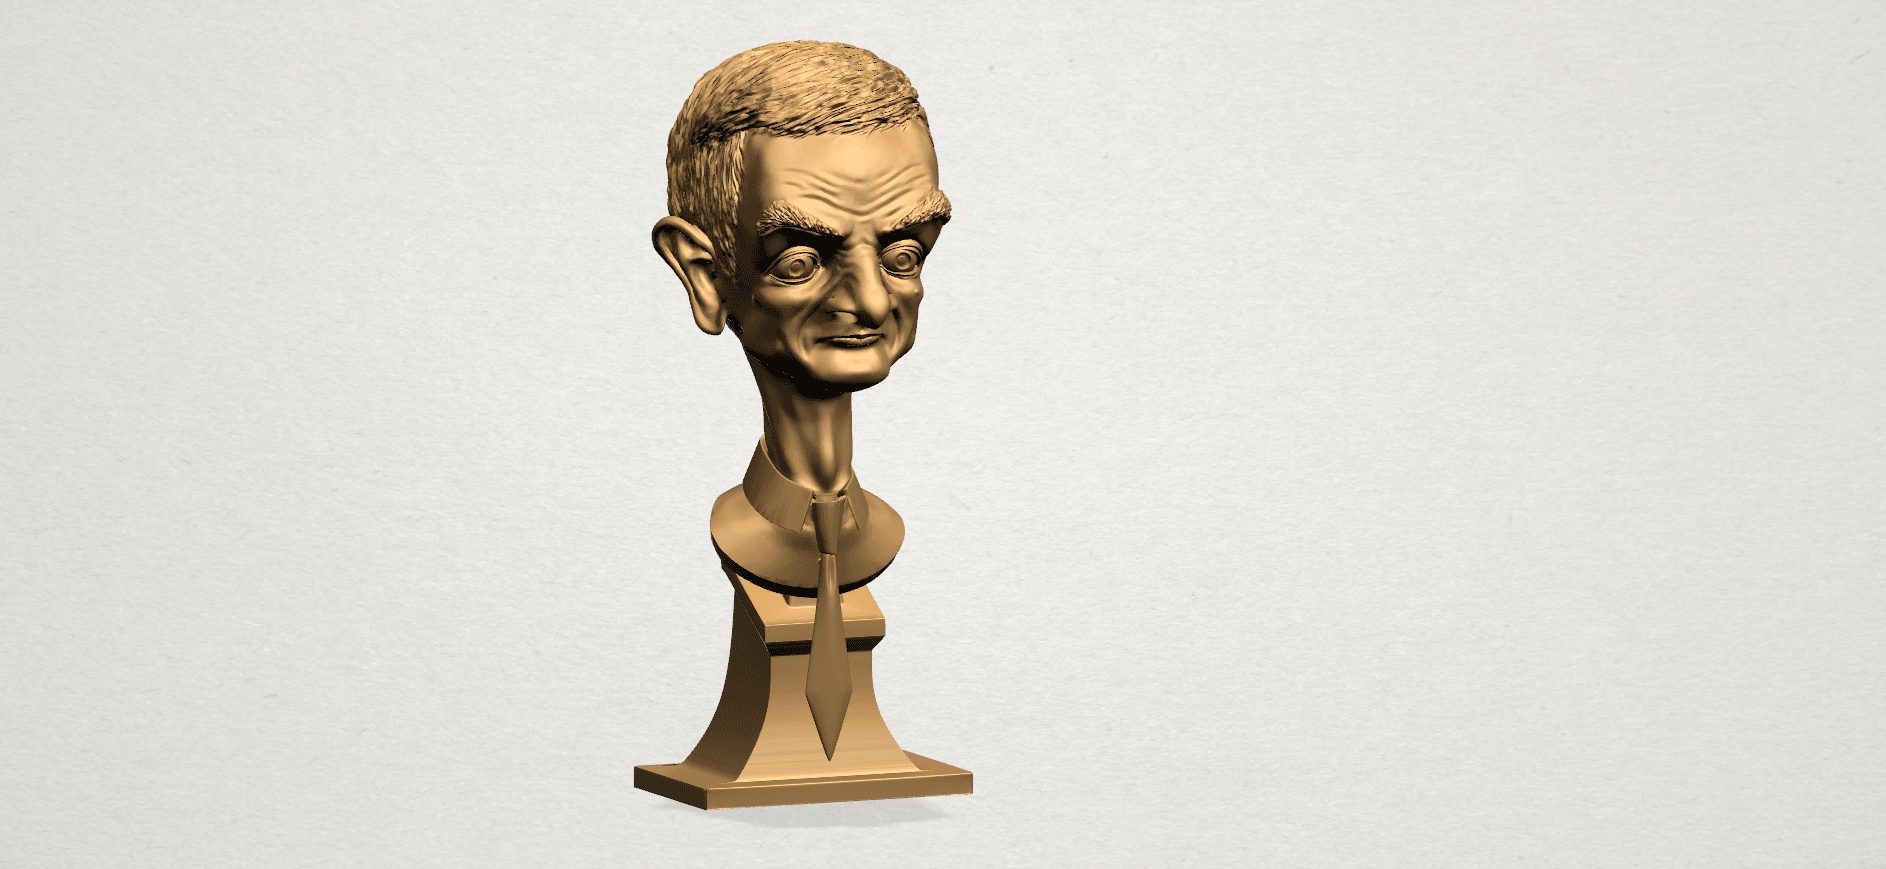 Sculpture of a man - B01.png Download free STL file Sculpture of a man 01 • 3D printable object, GeorgesNikkei